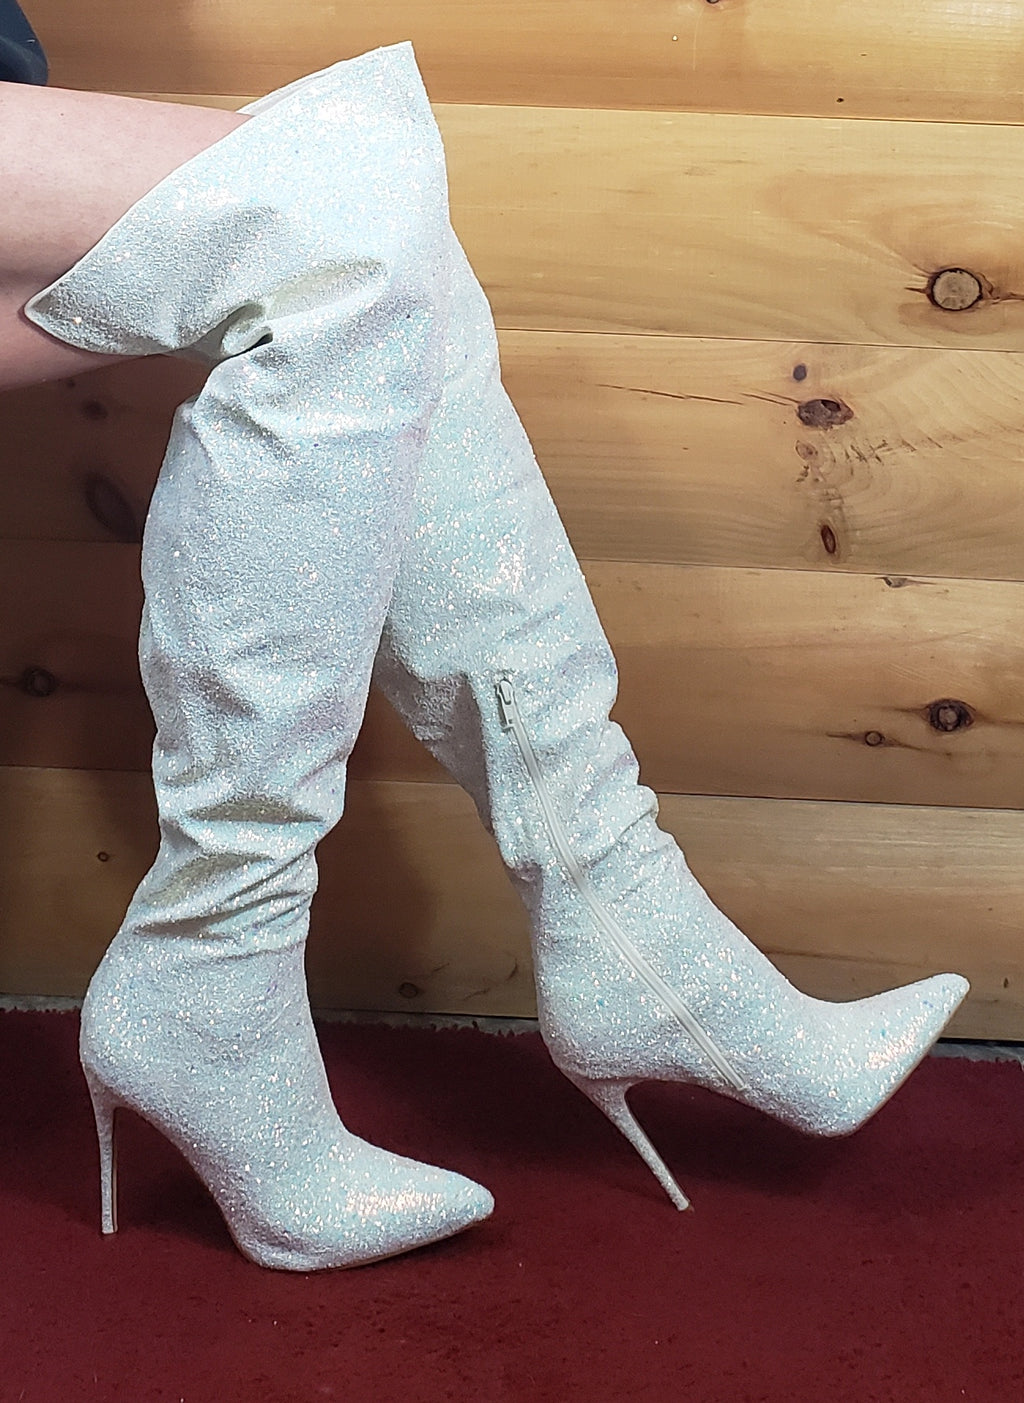 "3015 Thigh High Boots White Multi Glitter 5"" Stiletto Heel 6 - 14"